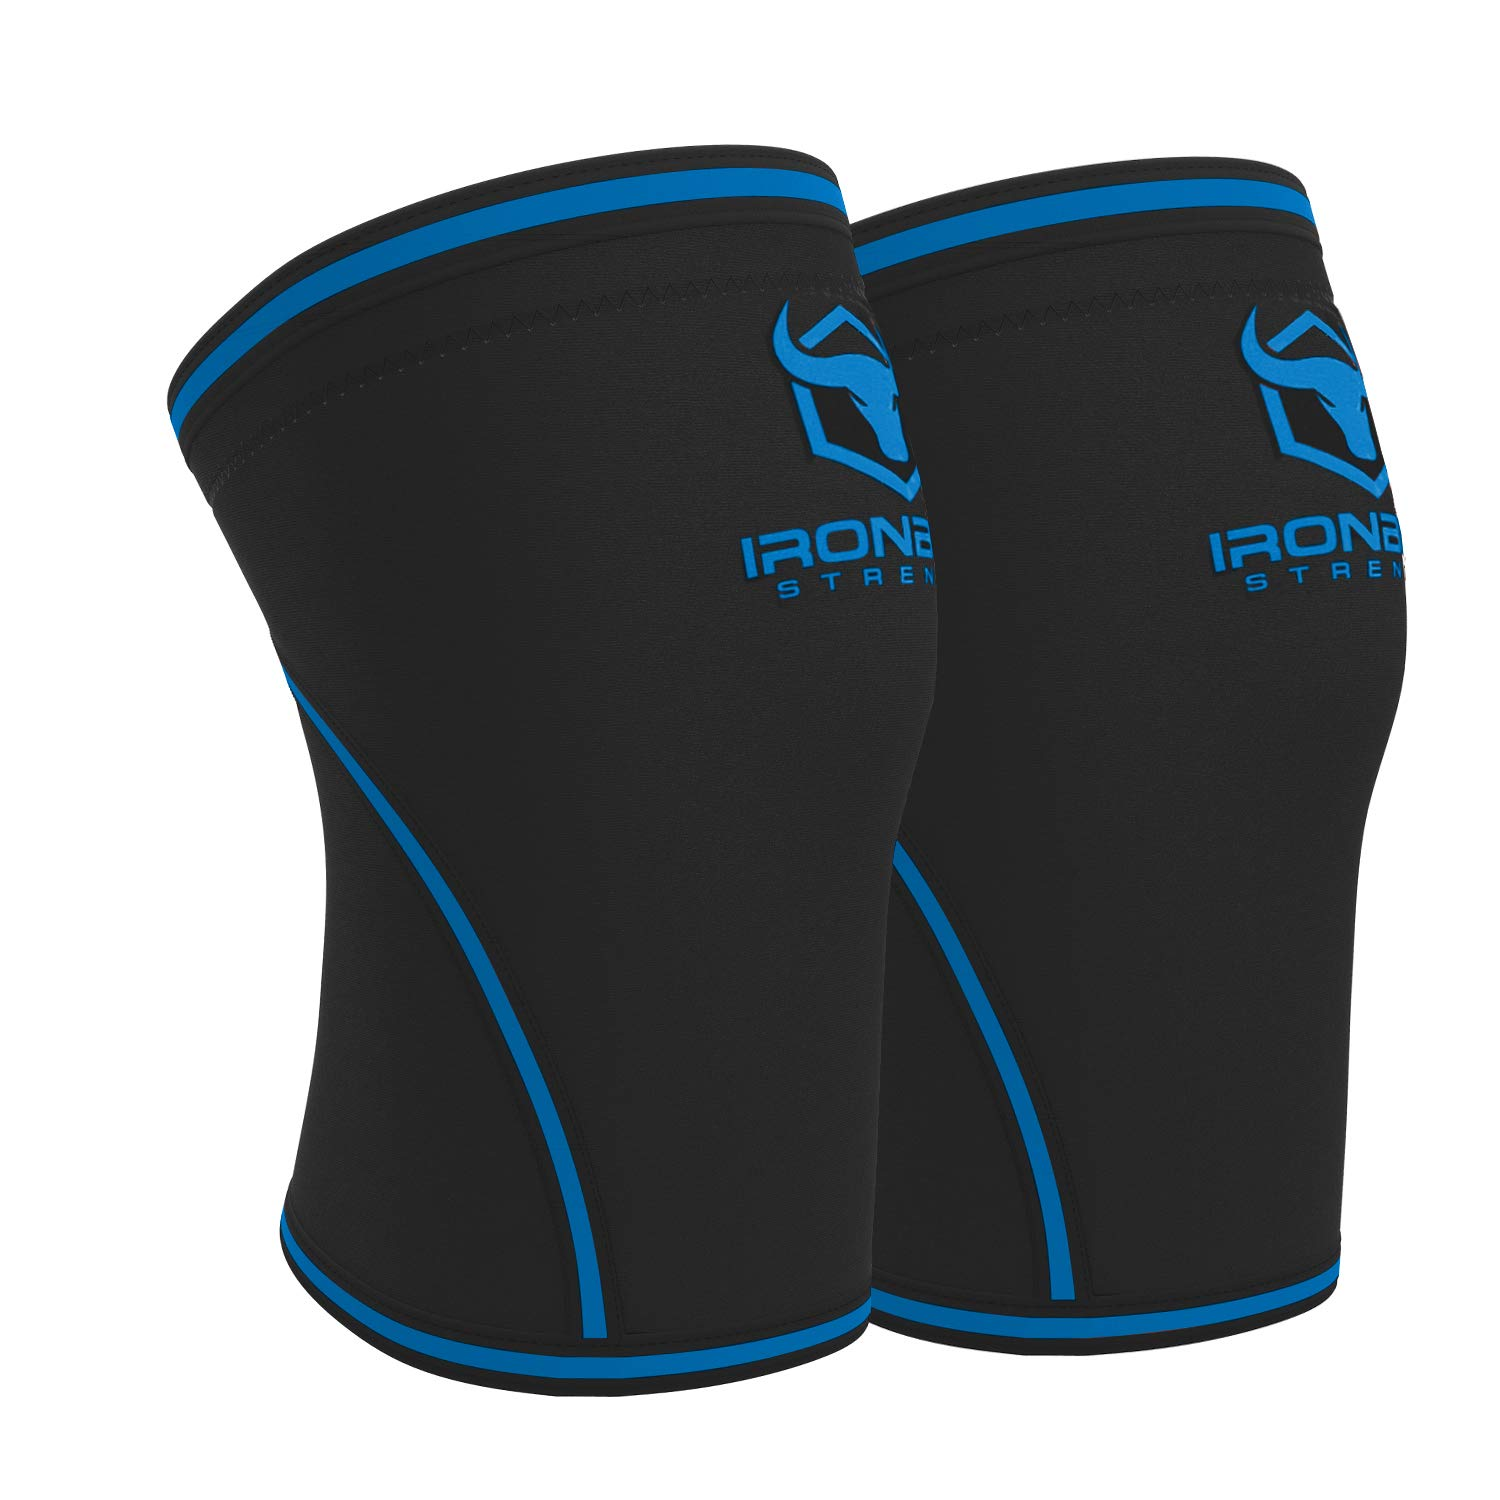 Knee Sleeves 7mm (1 Pair) - High Performance Knee Sleeve Support For Weight Lifting, Cross Training & Powerlifting - Best Knee Wraps & Straps Compression - For Men and Women (Black/Blue, Small)